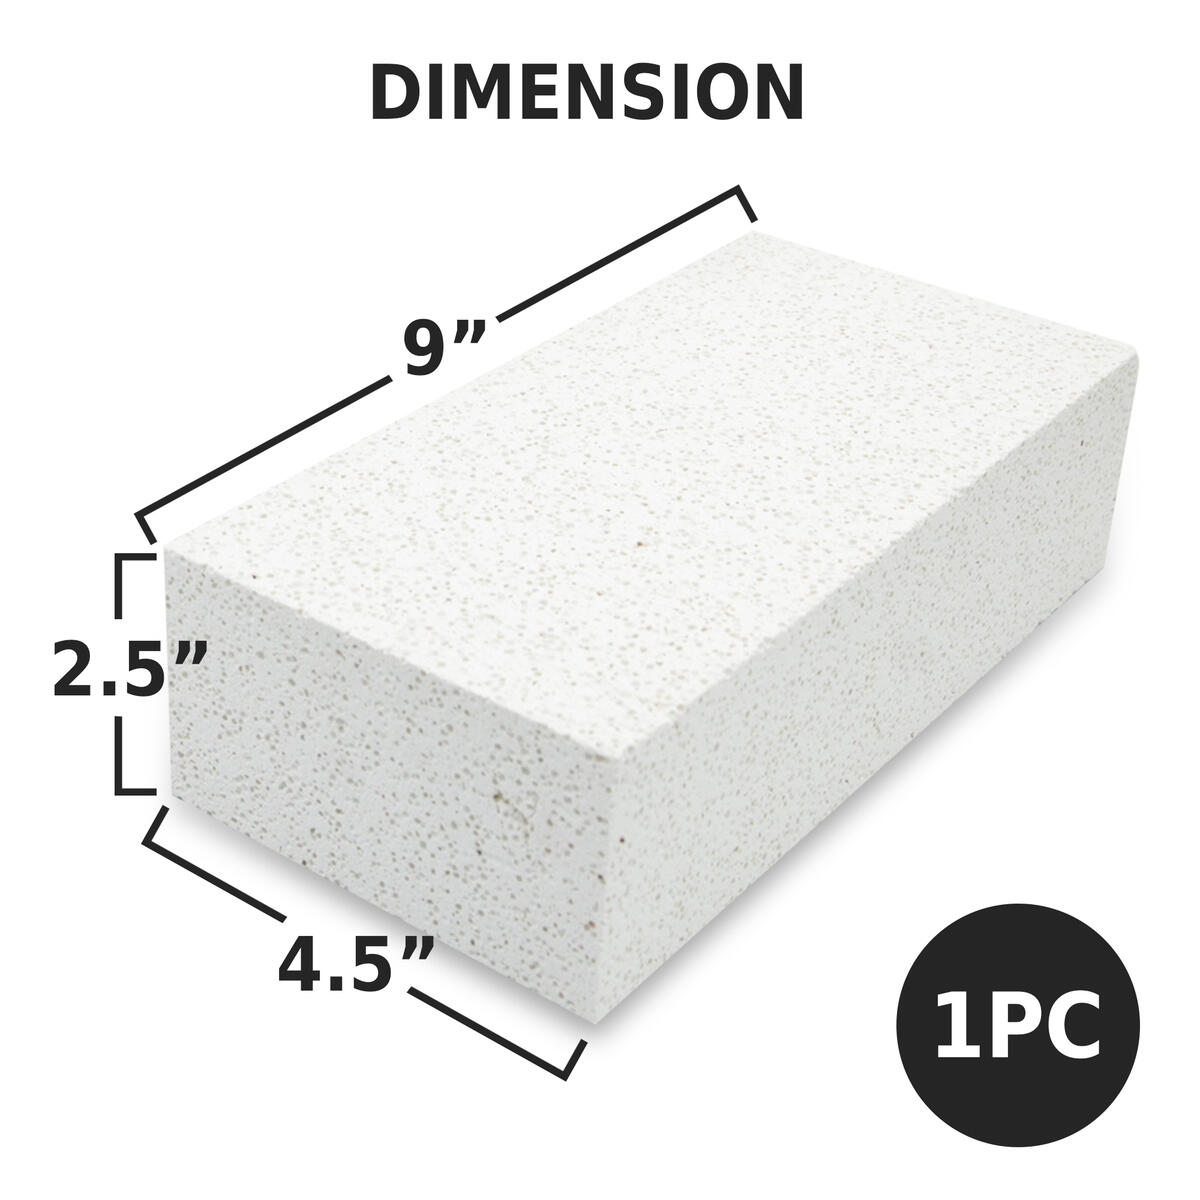 [Premium] Insulating Fire Brick for Forge, Soft Insulated Fire Brick for Pizza Oven, Kilns, 2700F Fireplace Bricks, Fire Pit Accessories for Heater, Metal Clay, Jewelry Soldering 9